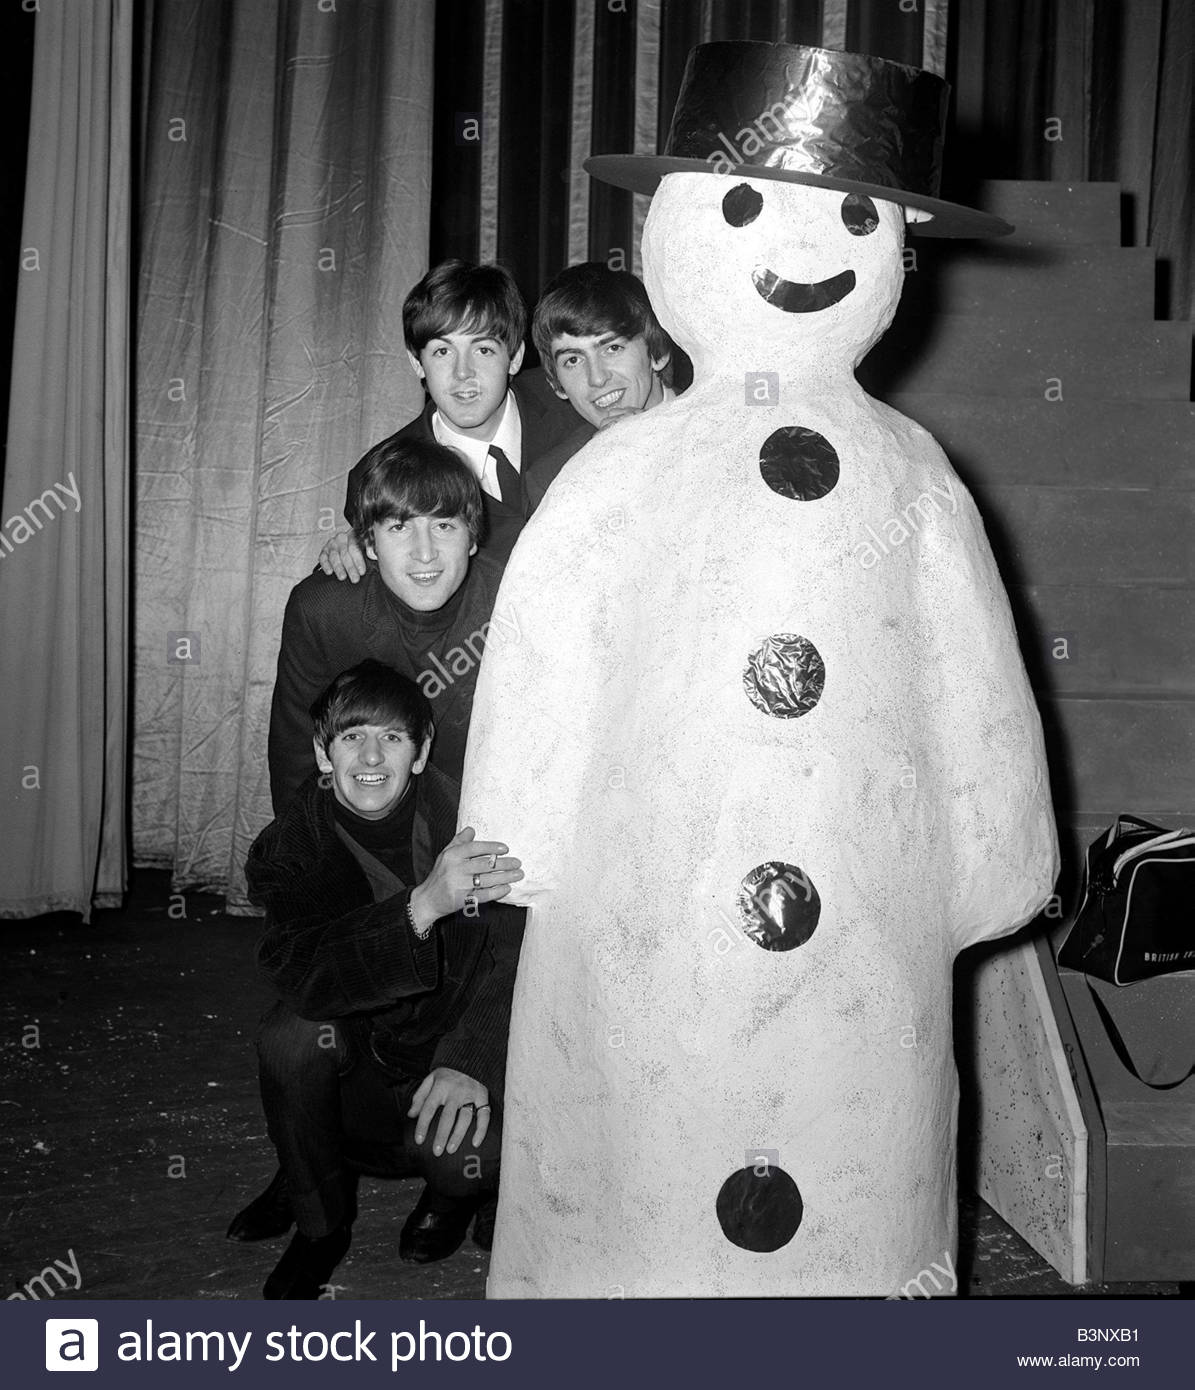 The Beatles December 1963 meet a snowman at the Finsbury Park Astoria where they are rehearsing for the Christmas - Stock Image